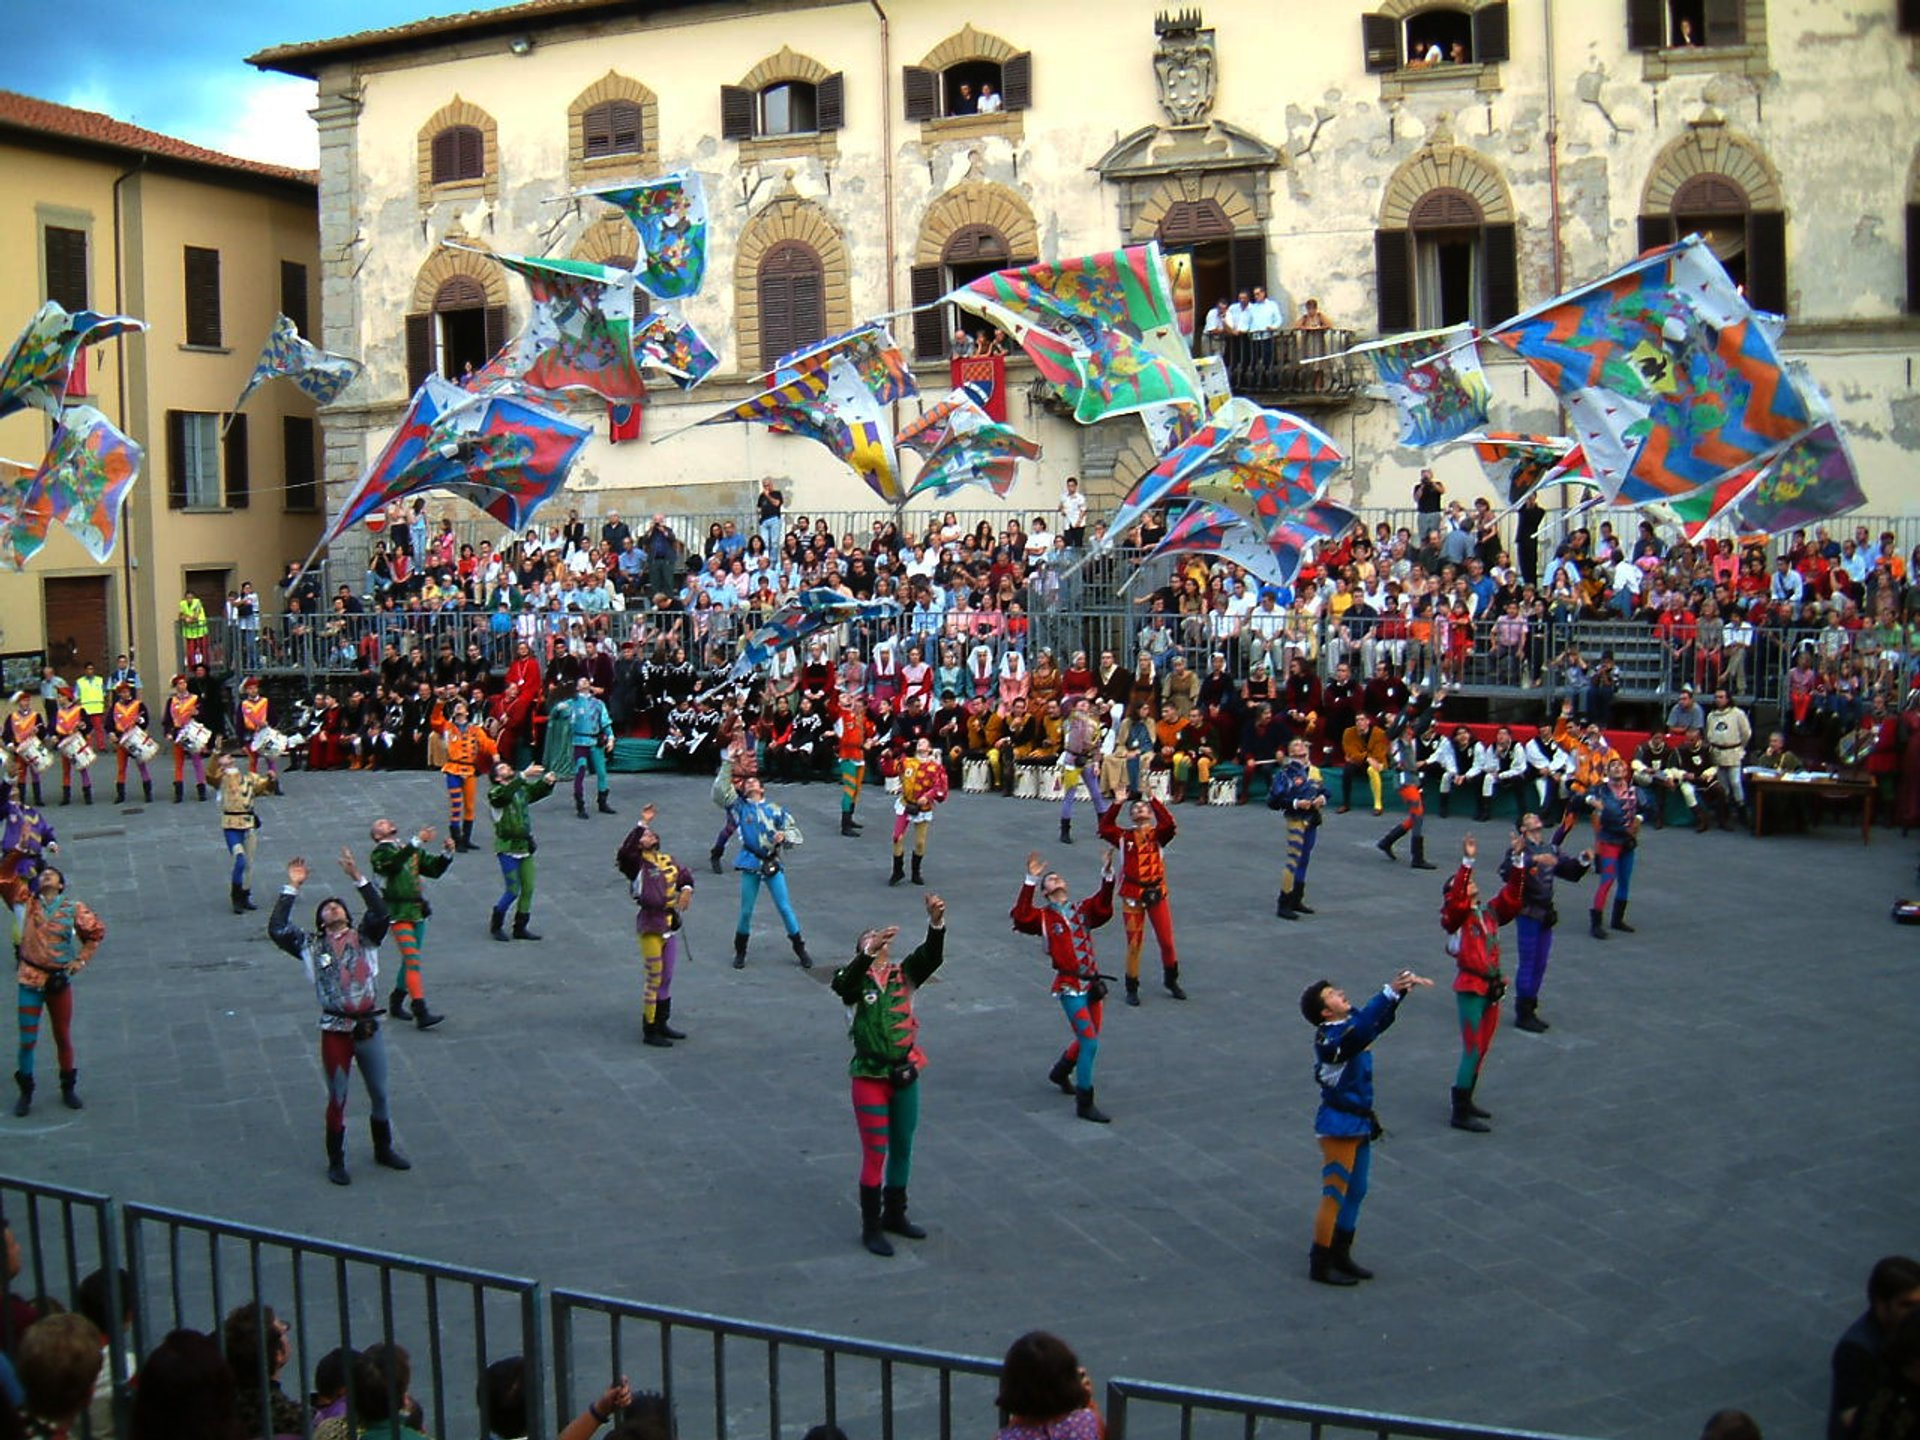 Palio della Balestra in Italy 2020 - Best Time